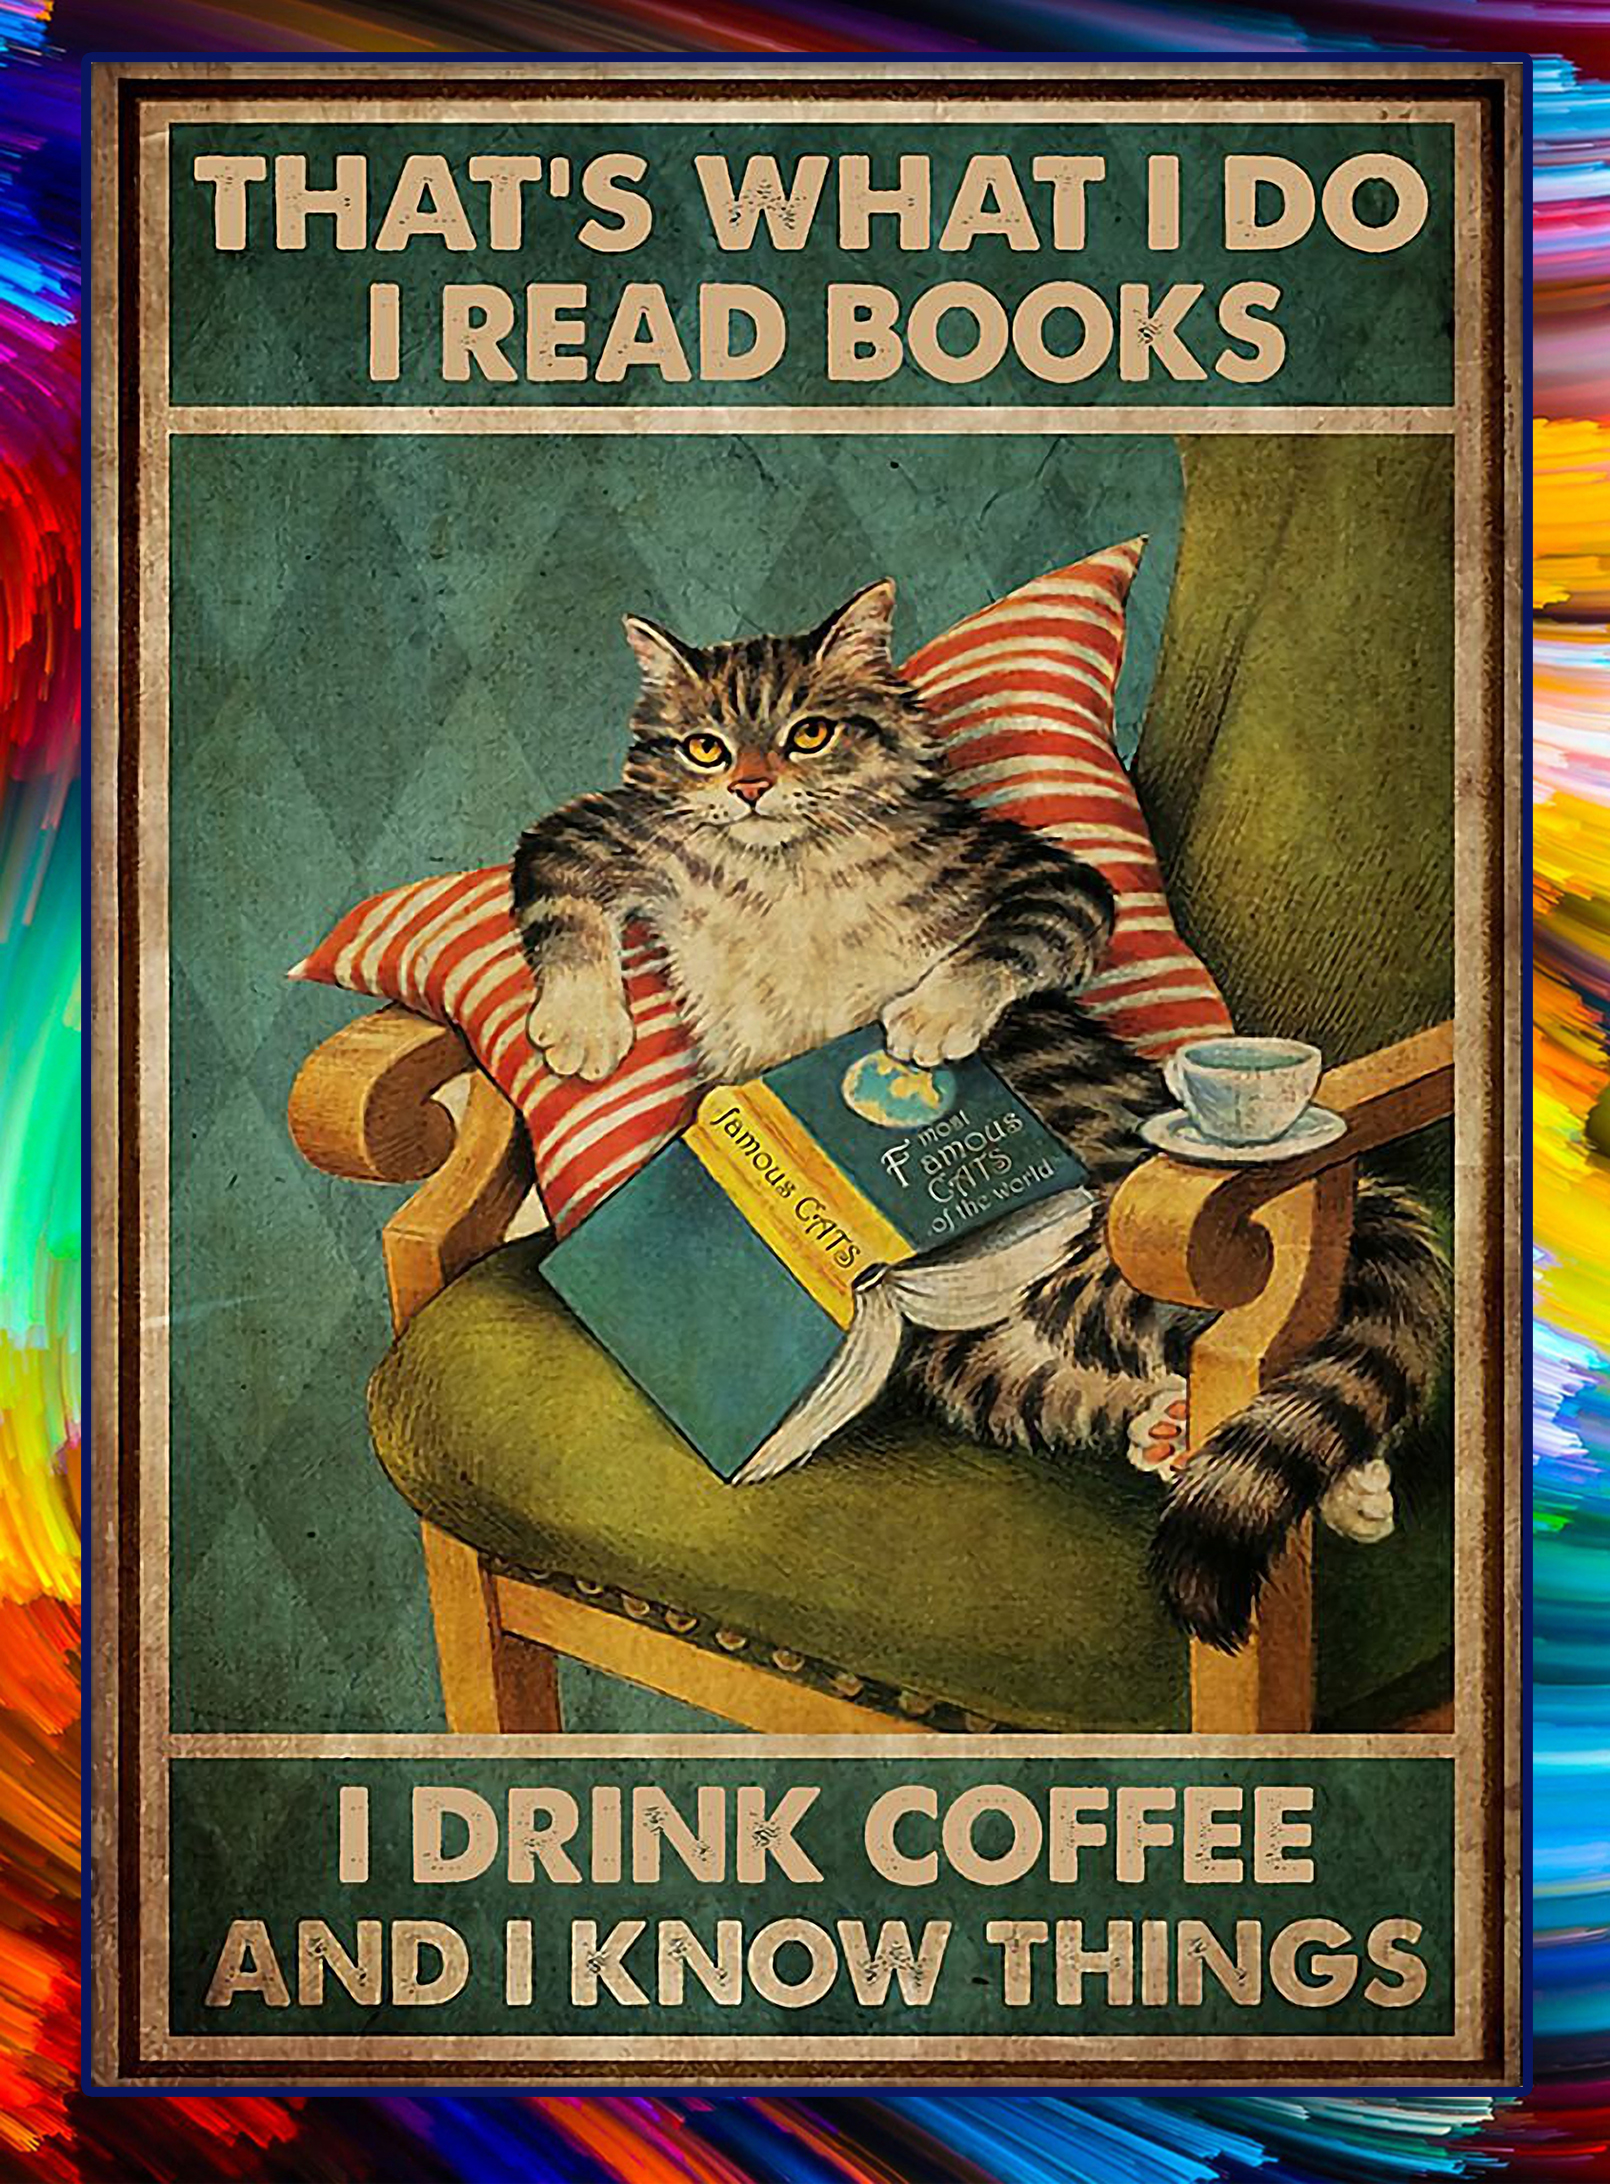 Cat that's what I do I read books I drink coffee and I know things poster - A3